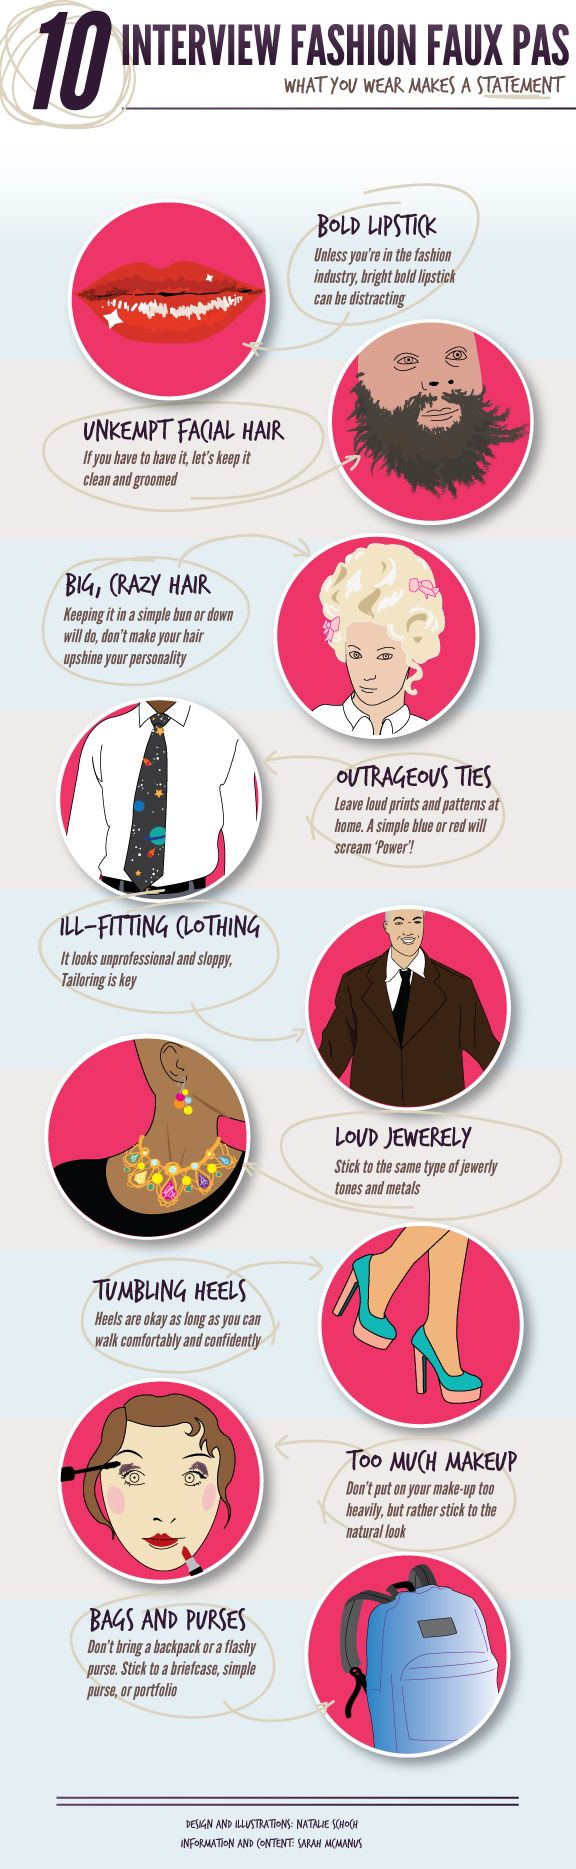 best images about preparing for an interview fashion don ts for that job interview why focus on this at all you want the interview to be on you not distracting fashion choices nb